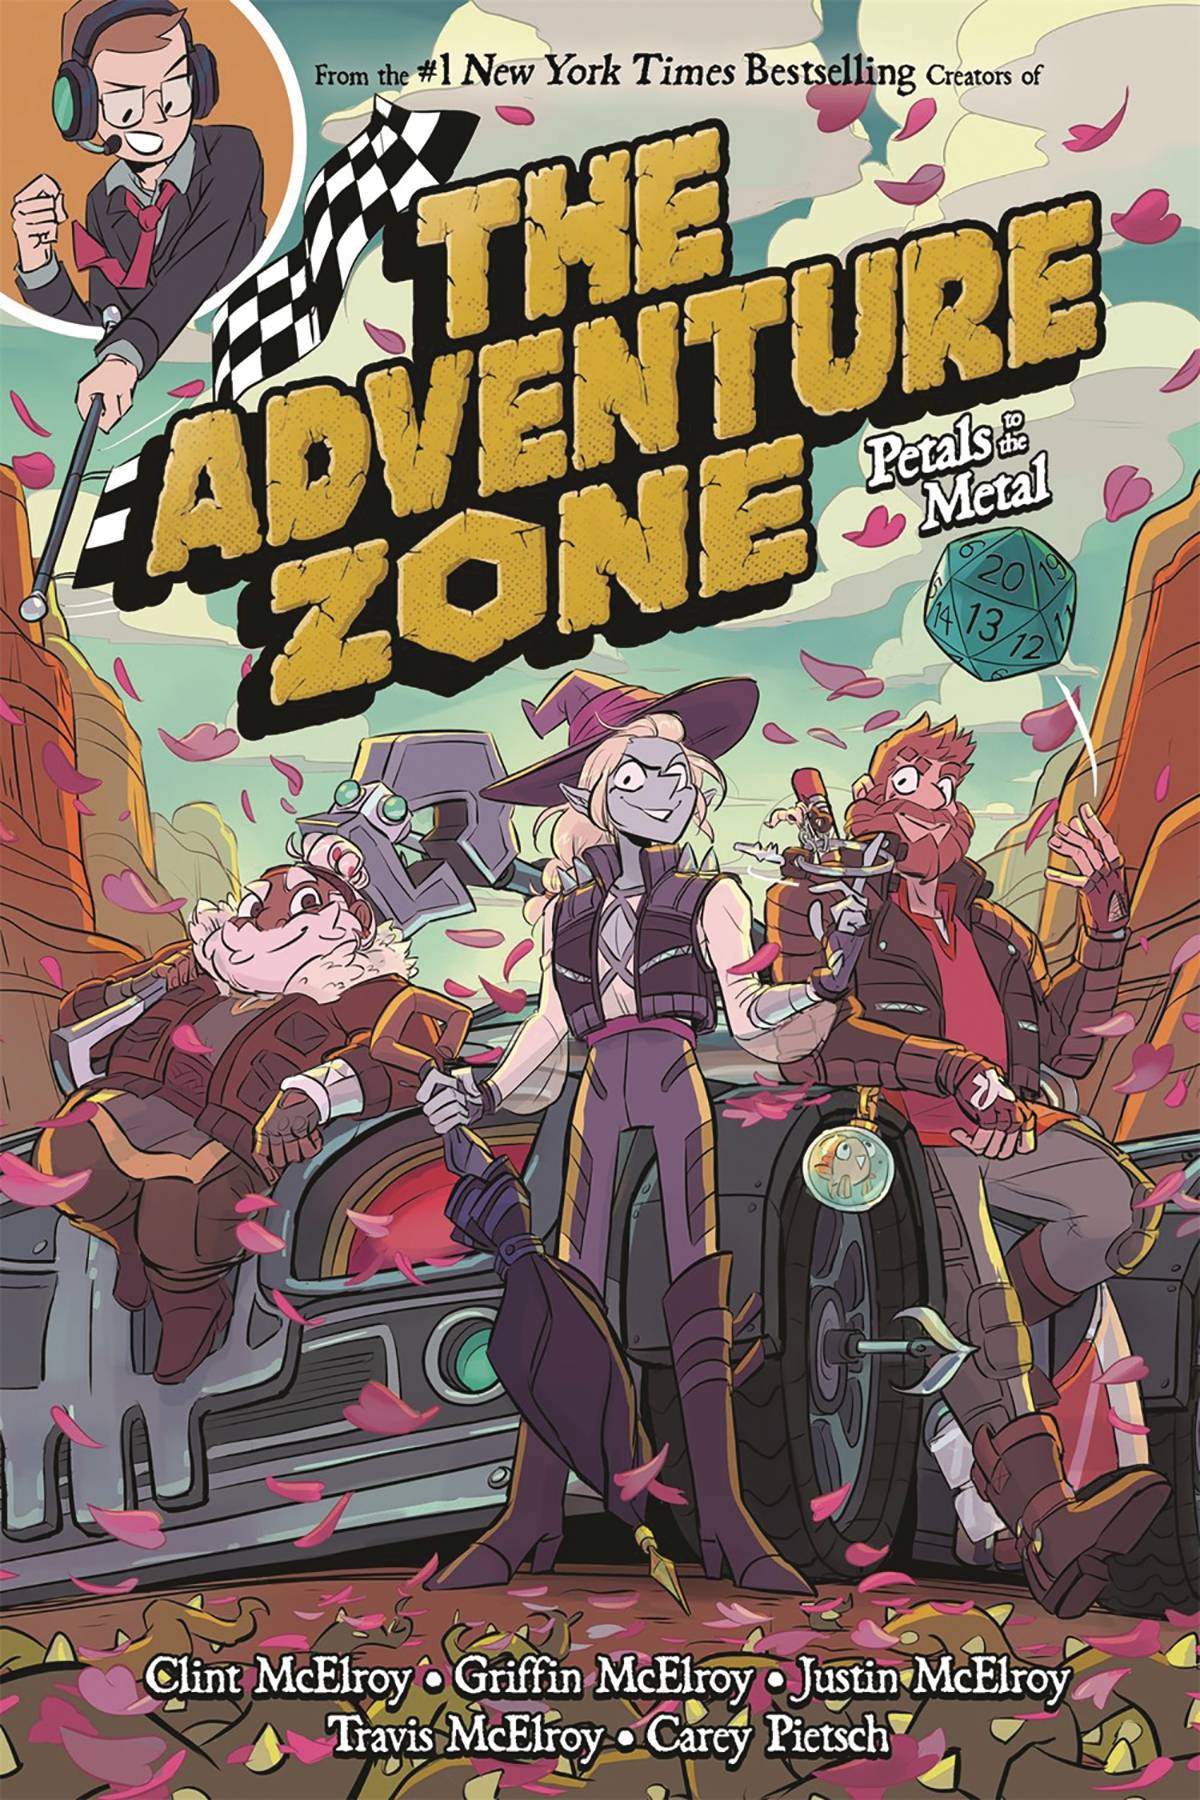 ADVENTURE ZONE GN VOL 03 PETALS TO METAL